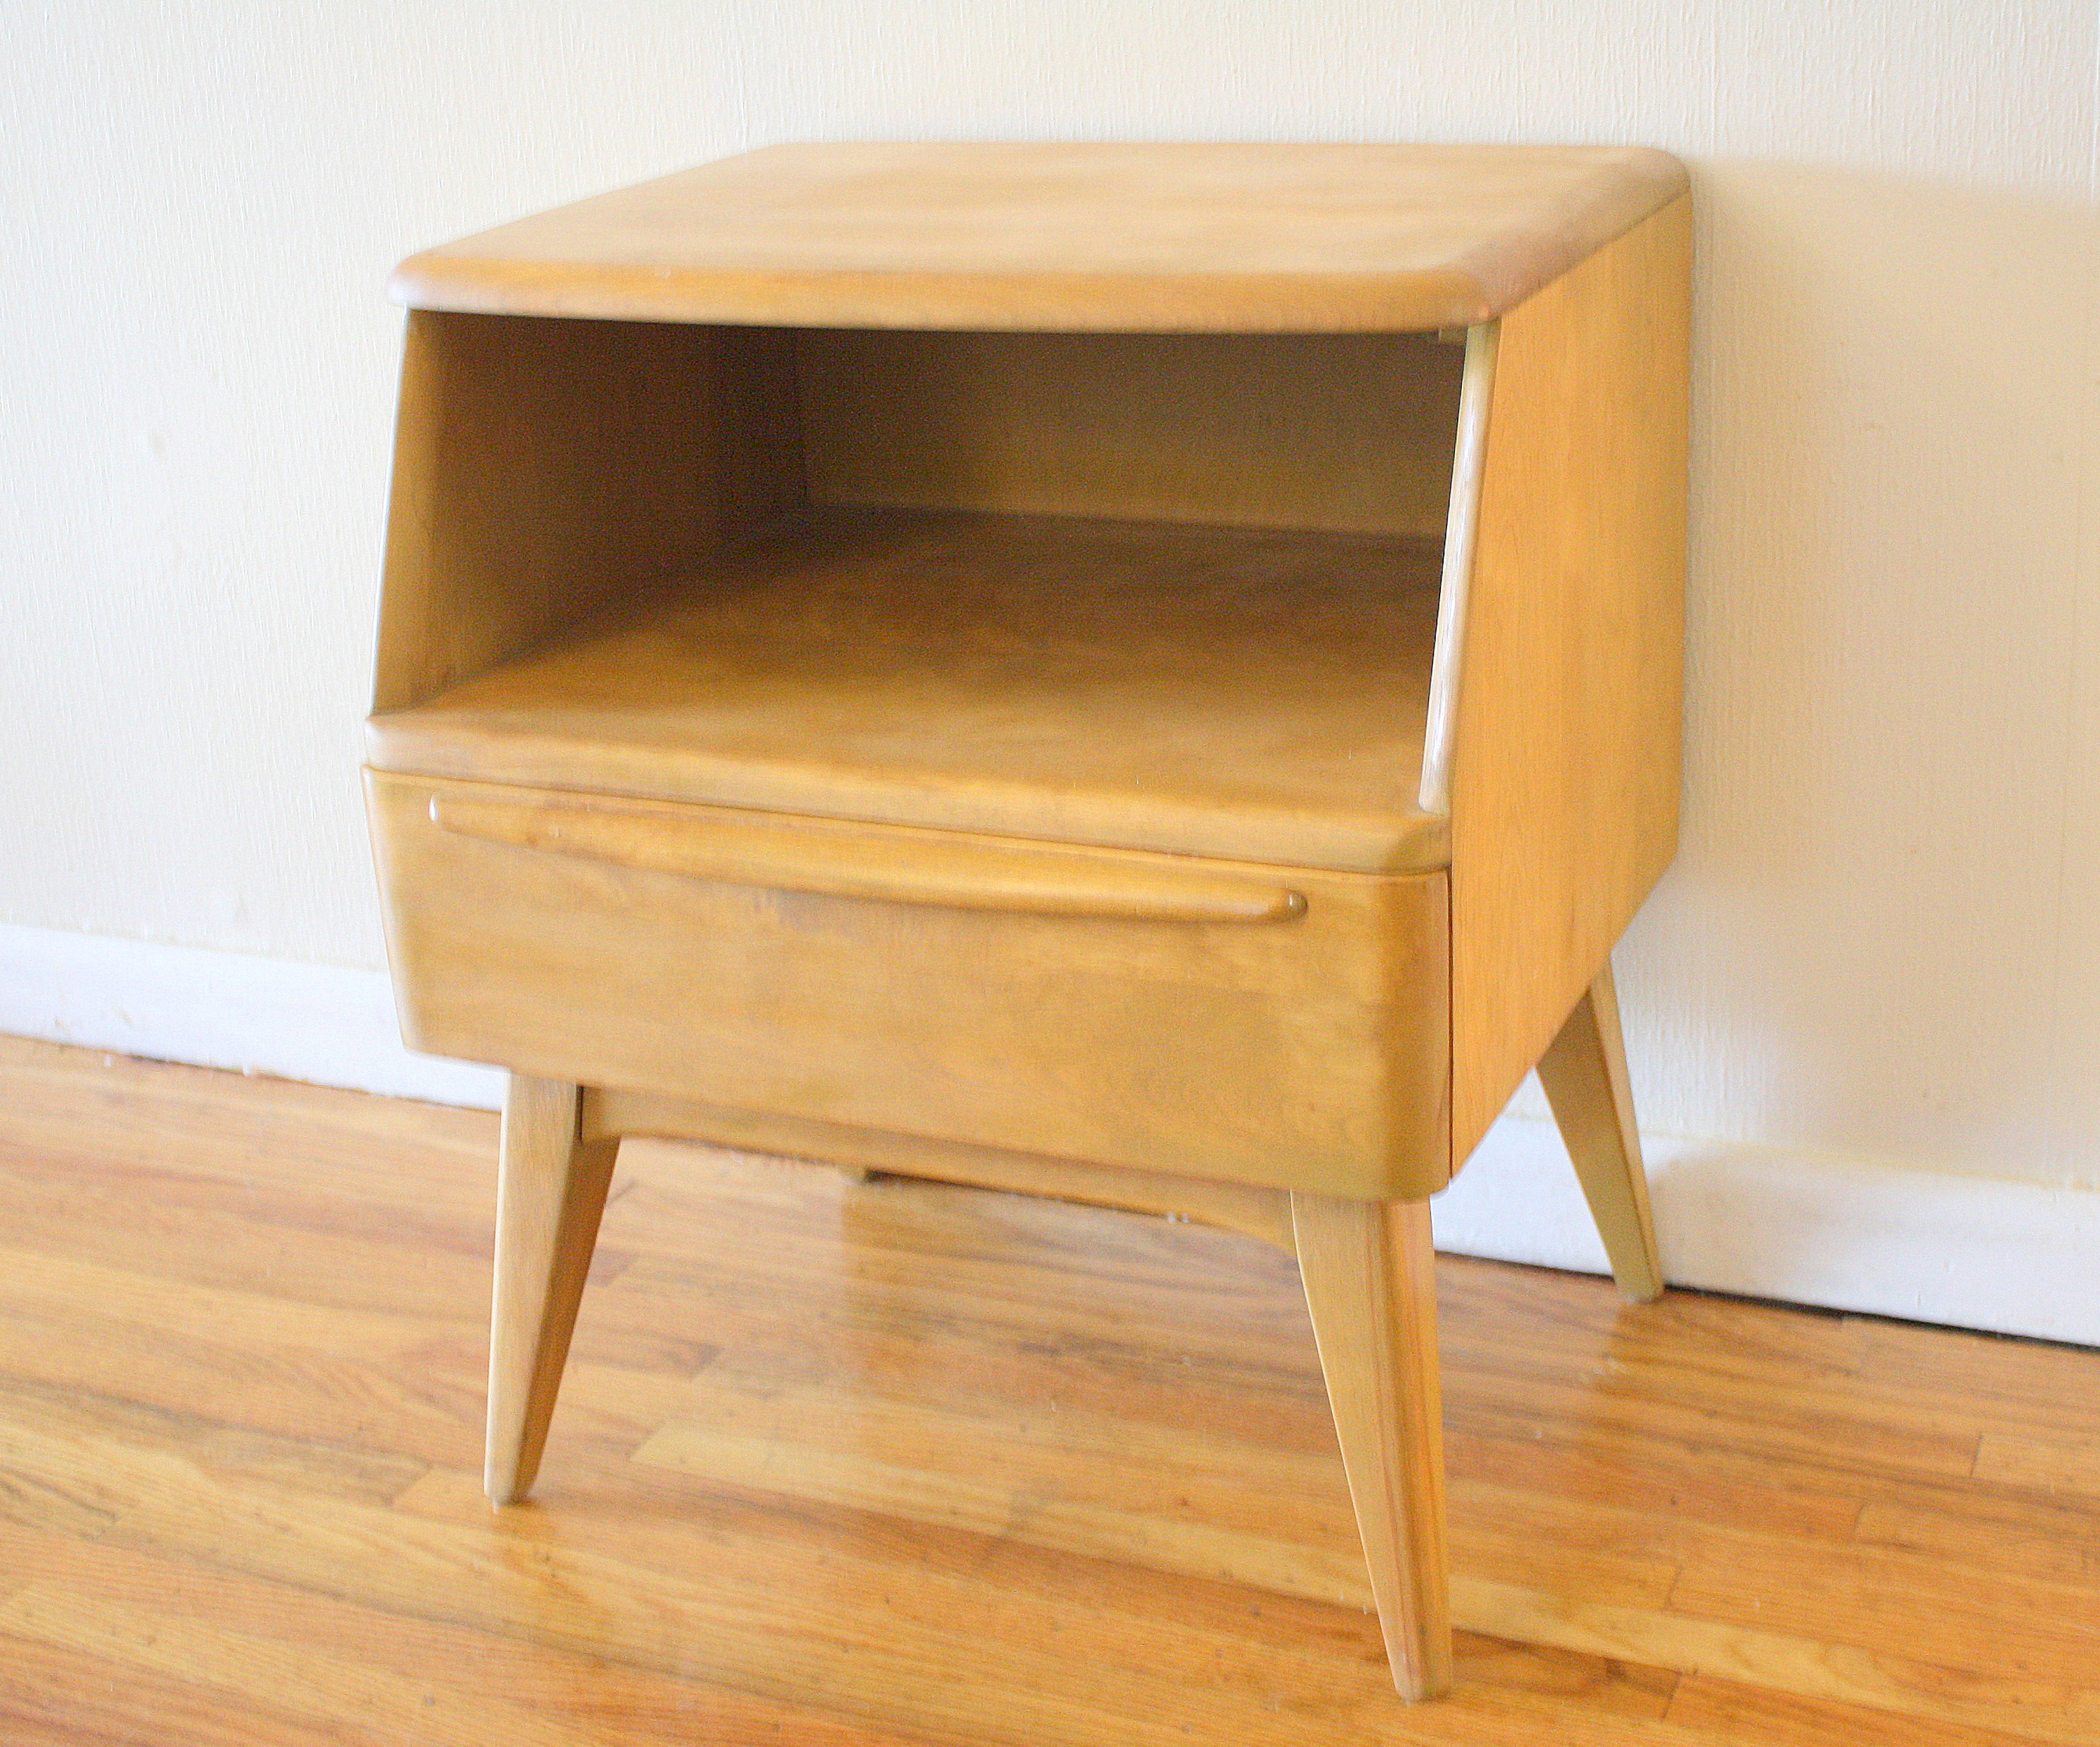 heywood wakefield vintage furniture Heywood Wakefield Side End Table Nightstands | Picked Vintage heywood wakefield vintage furniture